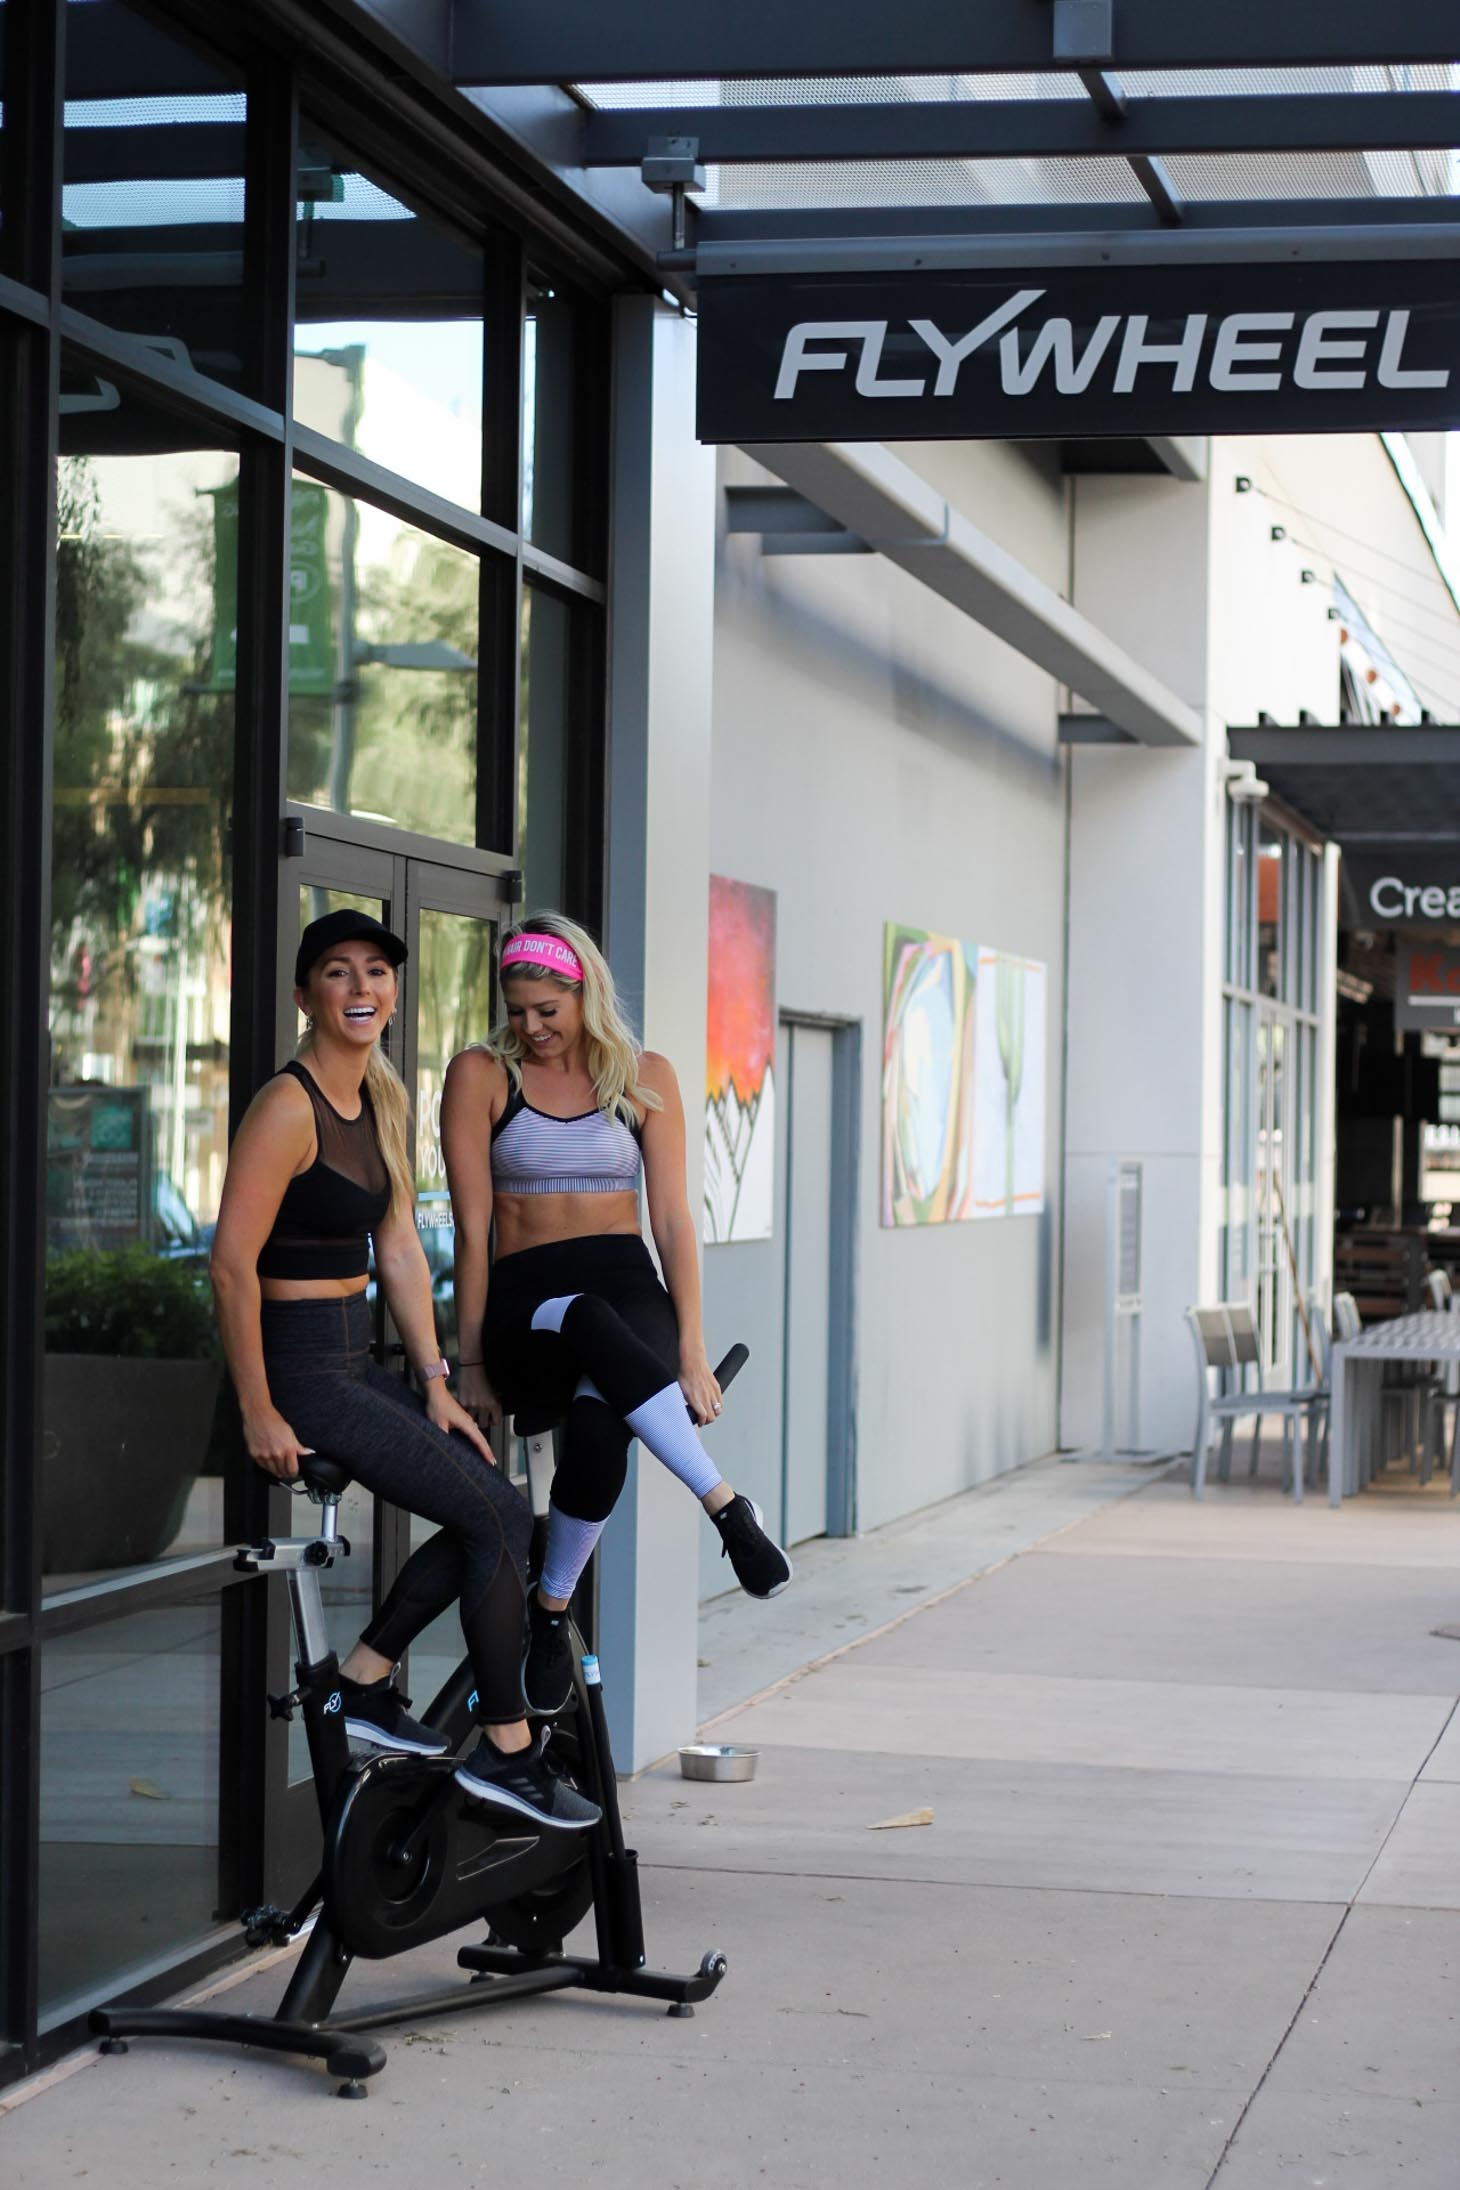 Erin Elizabeth of Wink and a Twirl shares her Flywheel Sports Cycle Experience at Flywheel Sports Studio at Scottsdale Quarter in Scottsdale, Arizona